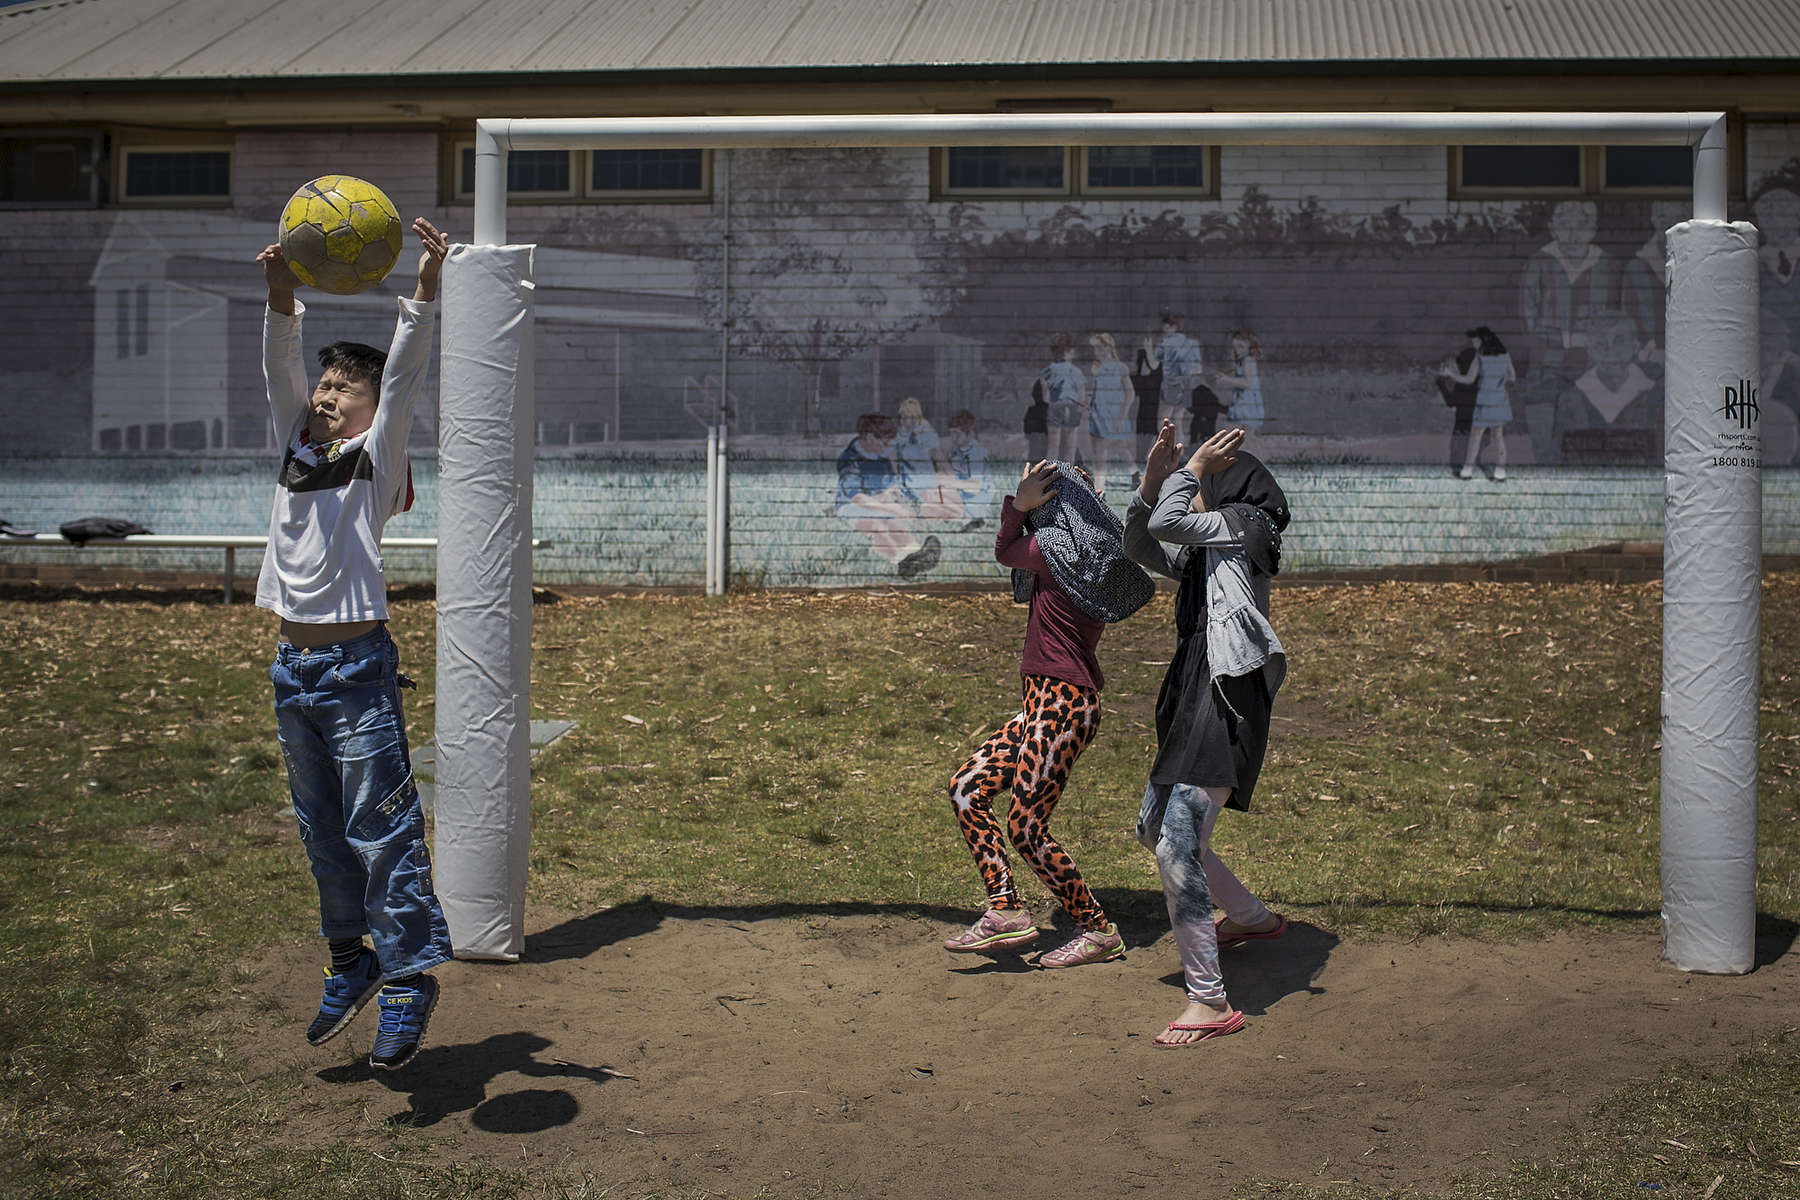 A young Afghan boy saves a goal kick as two girls hide from the oncoming ball. The children all attend the Kateb Hazara Association weekend school in Sydney where they learn to read and write in Dari and Hazaragi while also learning to recite from the Quran.